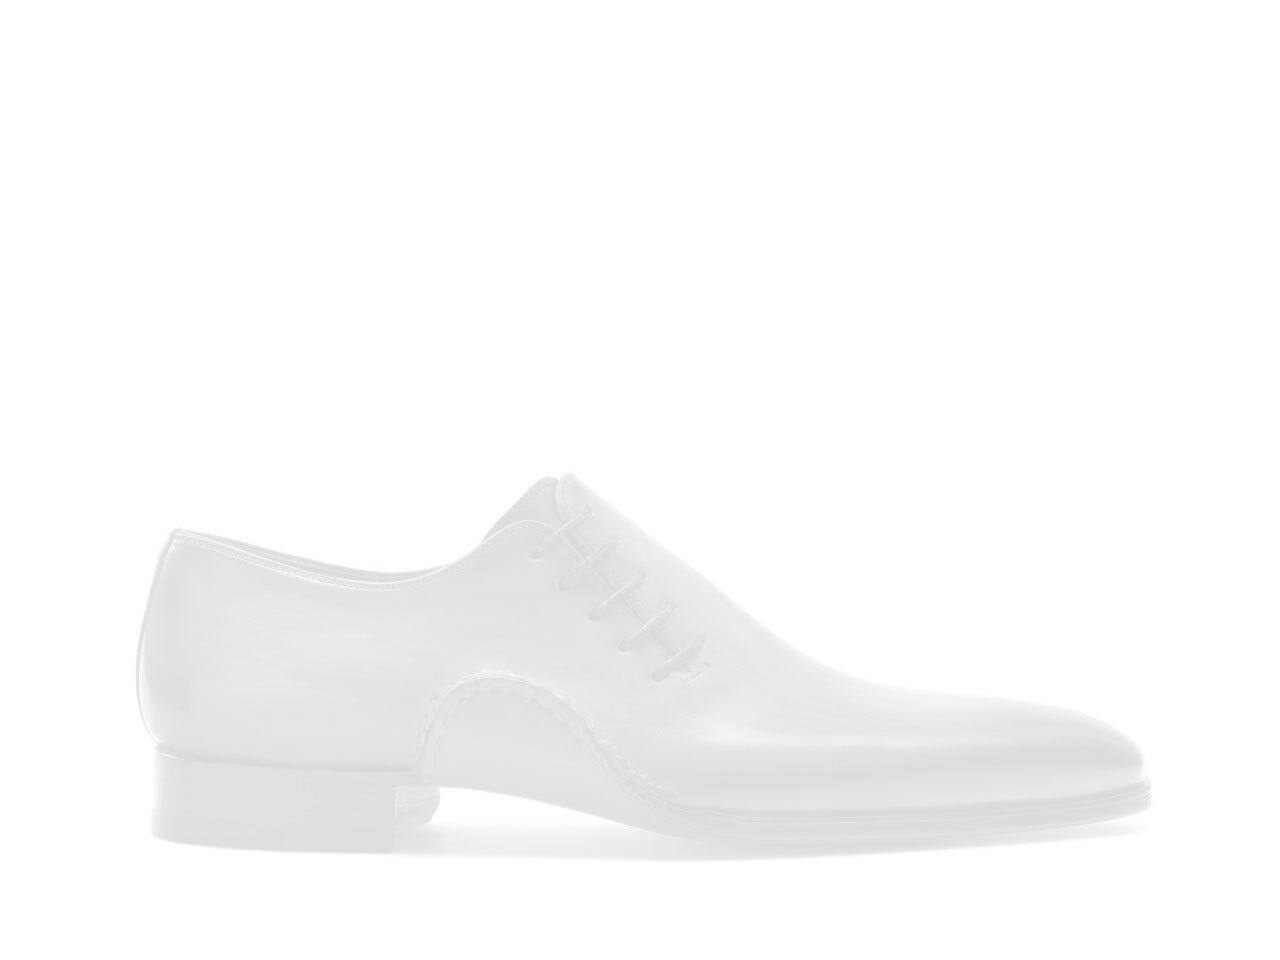 Side view of the Magnanni Jethro Cuero Men's Oxford Shoes